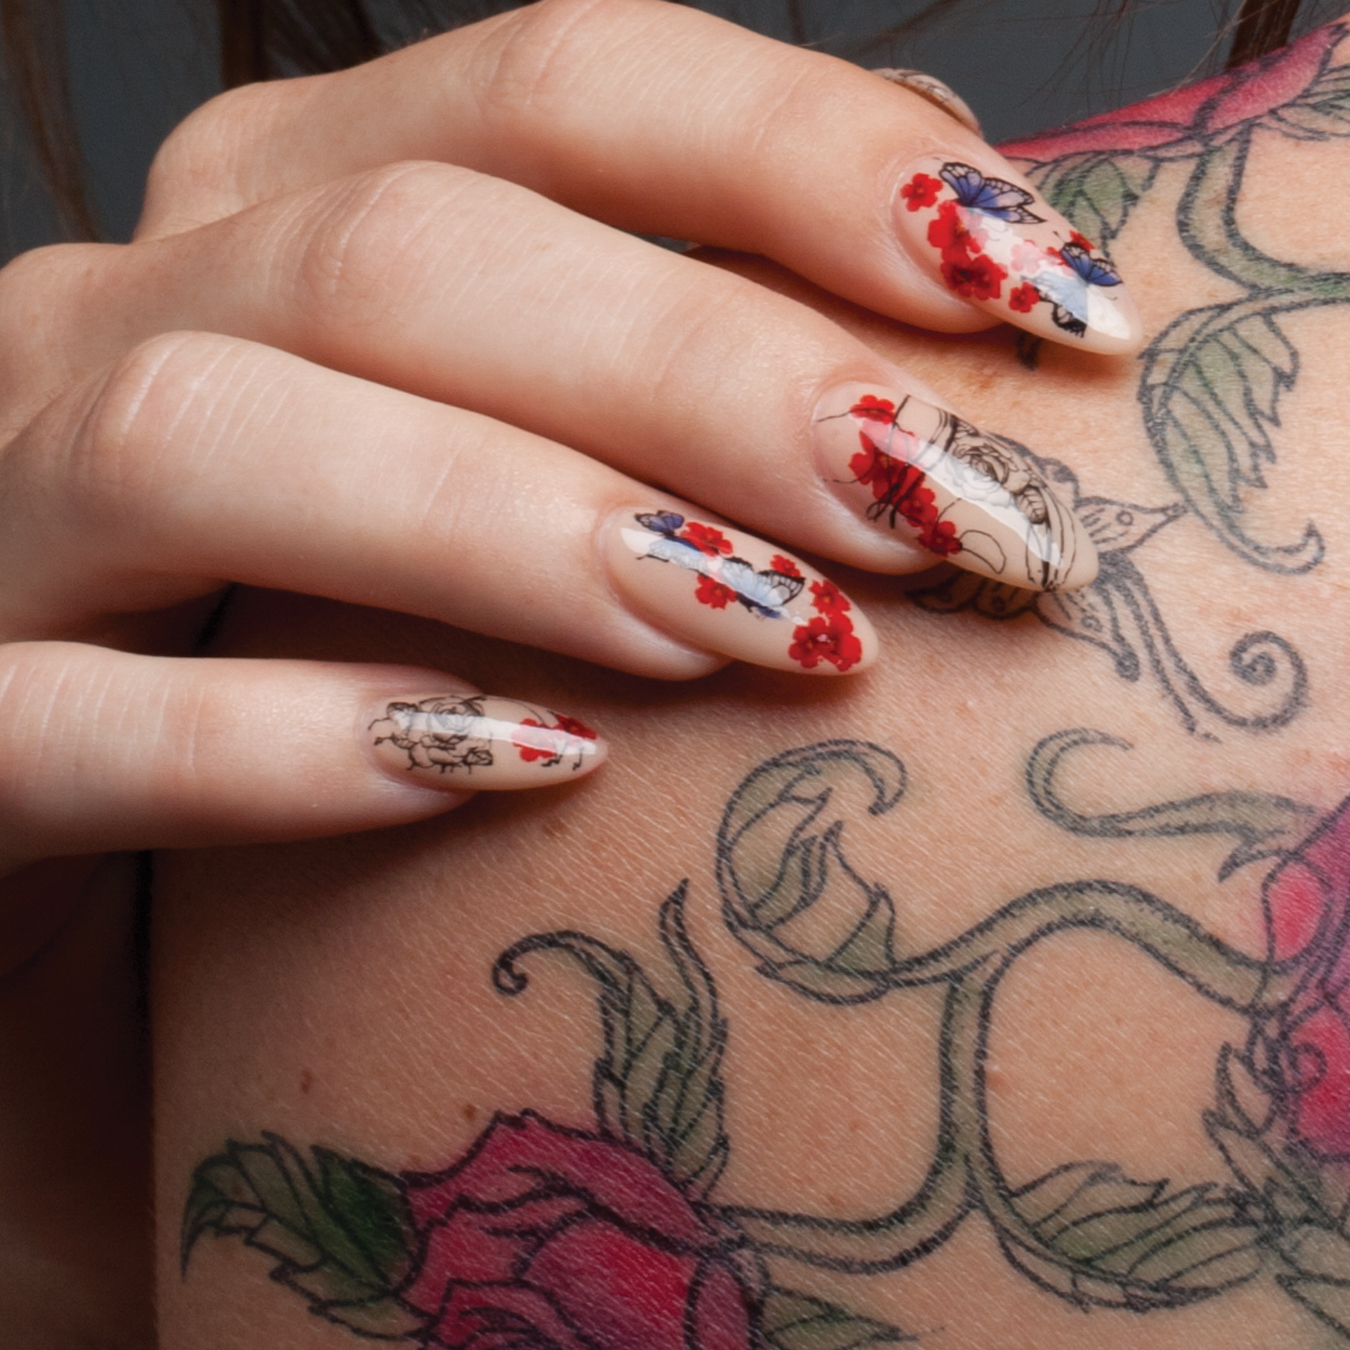 Nail Art Tutorial: Tattoo Nail Designs and How to Do Them